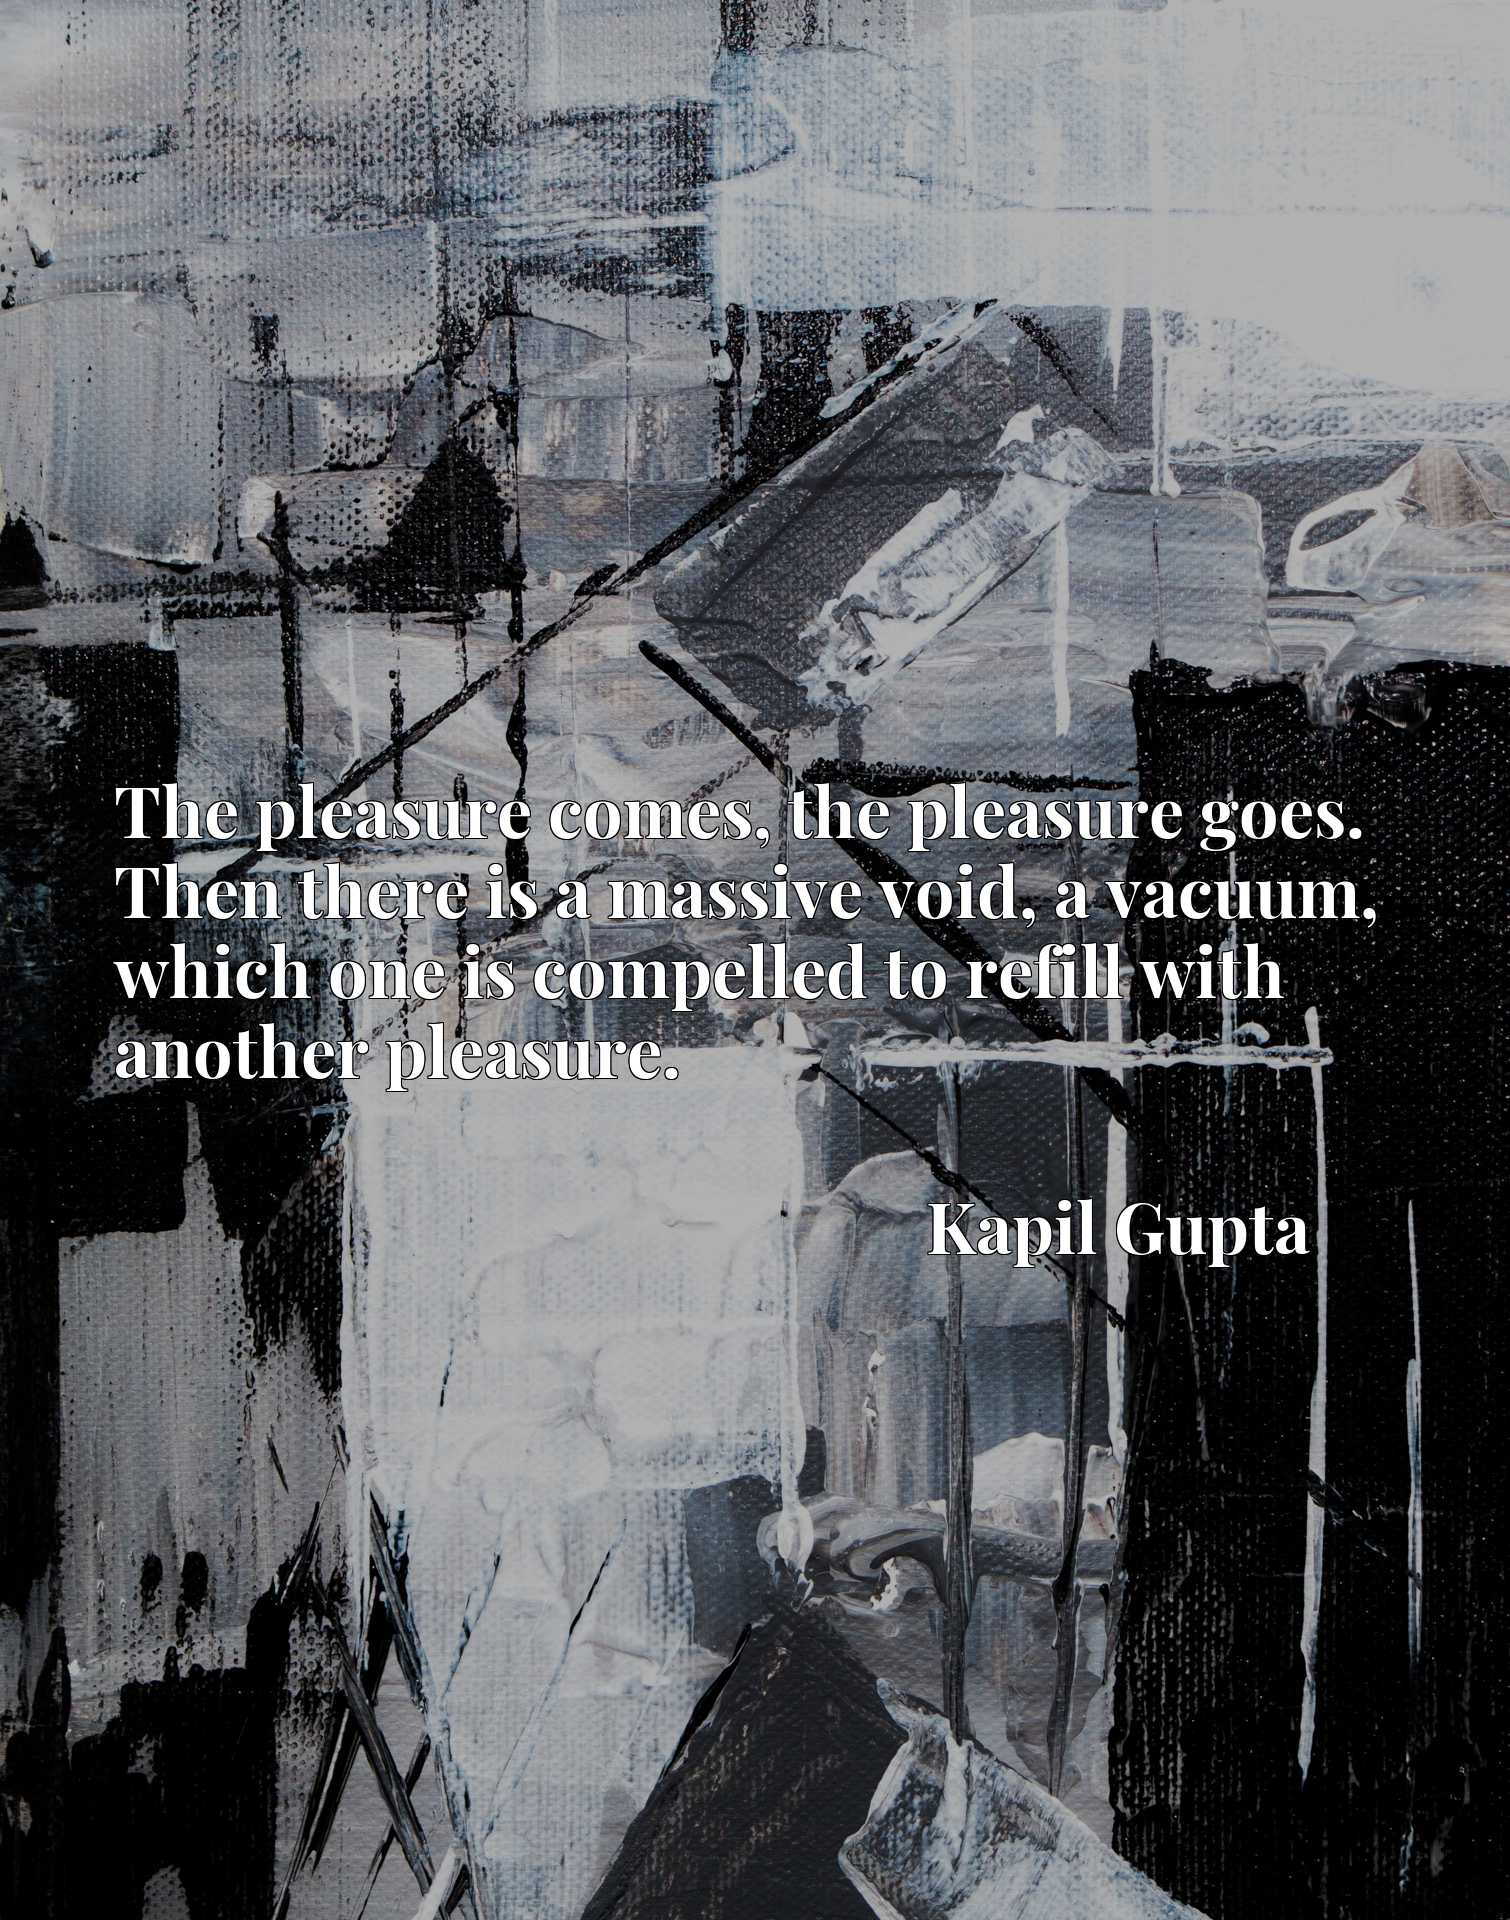 The pleasure comes, the pleasure goes. Then there is a massive void, a vacuum, which one is compelled to refill with another pleasure.